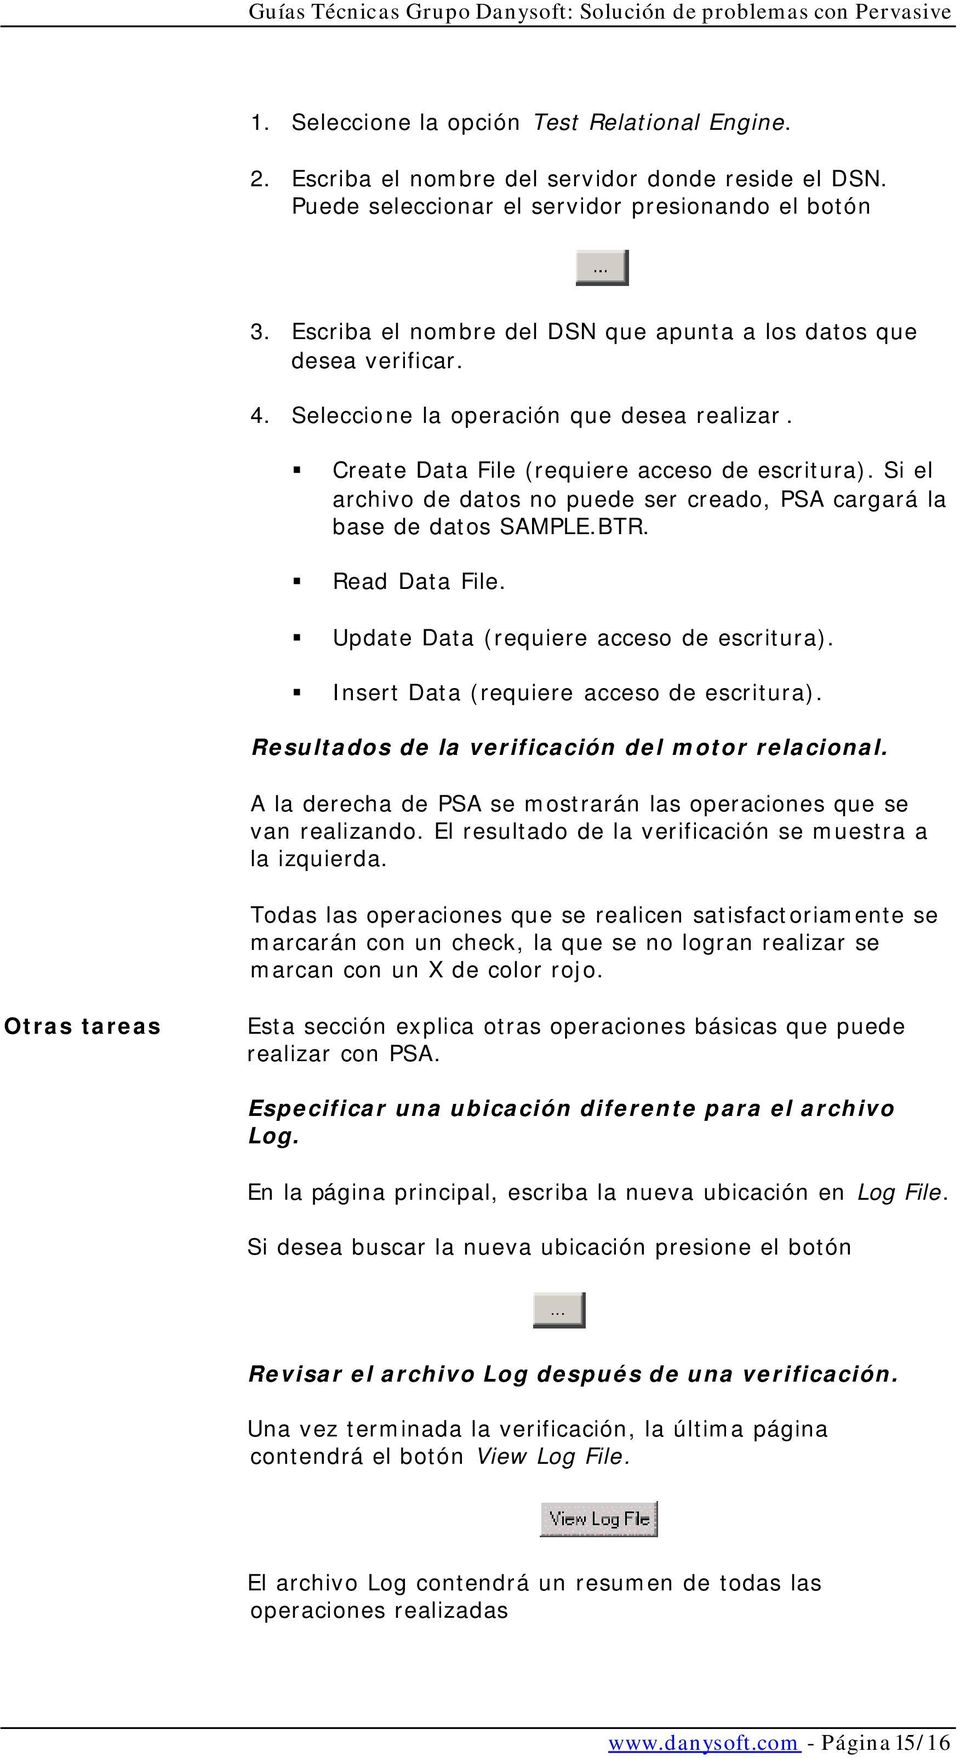 Create Data File (requiere acceso de escritura). Si el archivo de datos no puede ser creado, PSA cargará la base de datos SAMPLE.BTR. Read Data File. Update Data (requiere acceso de escritura).